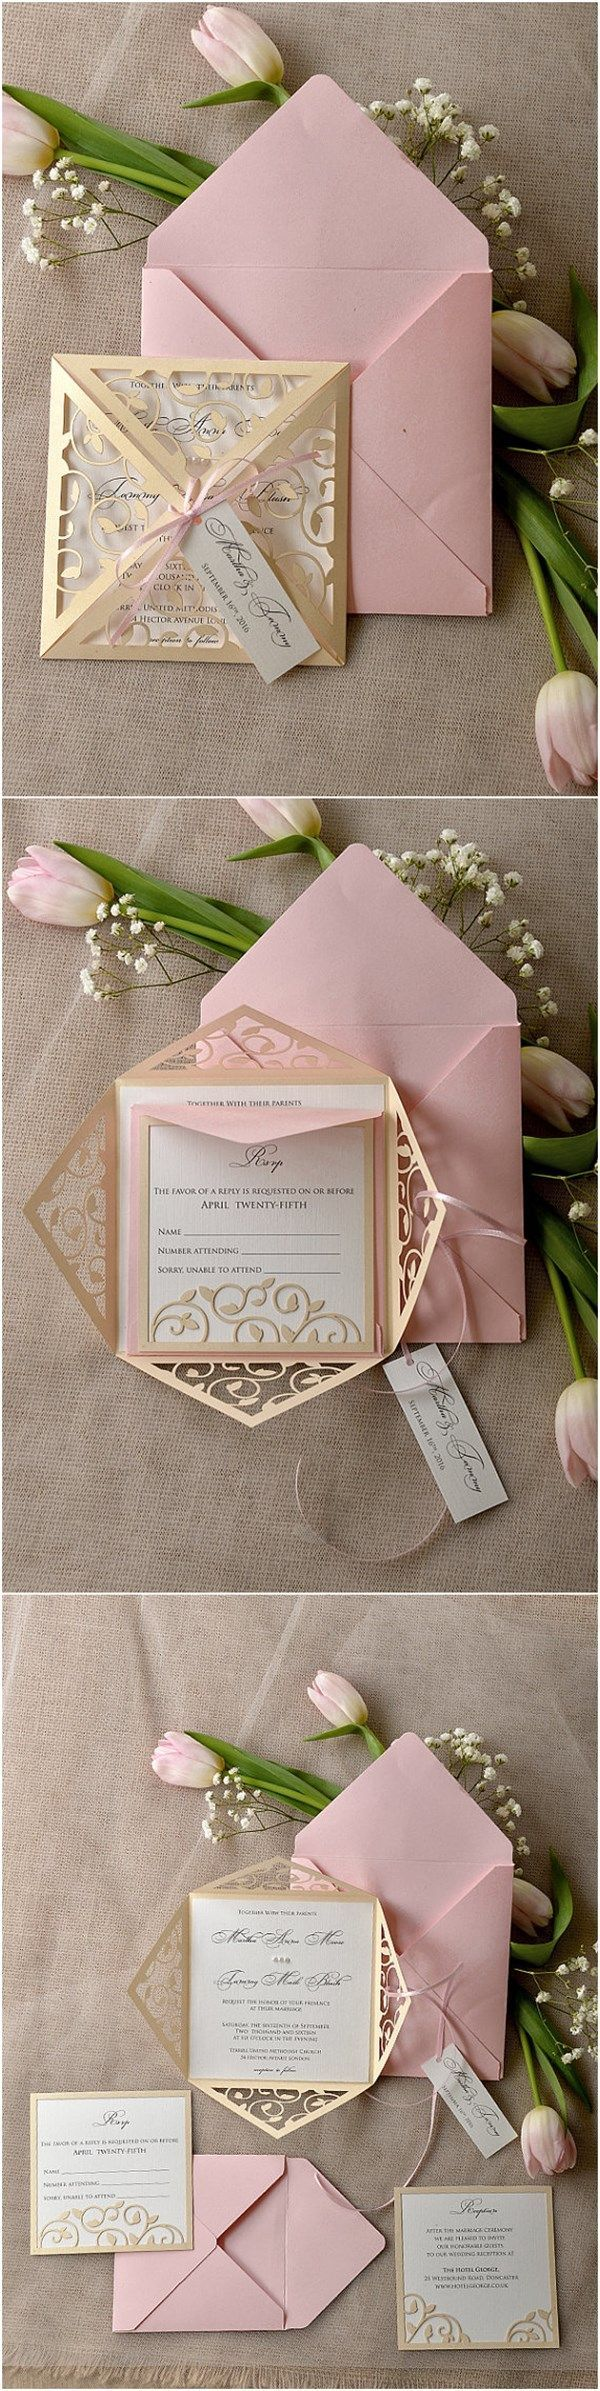 484 Best Invitations Images On Pinterest Invitation Cards